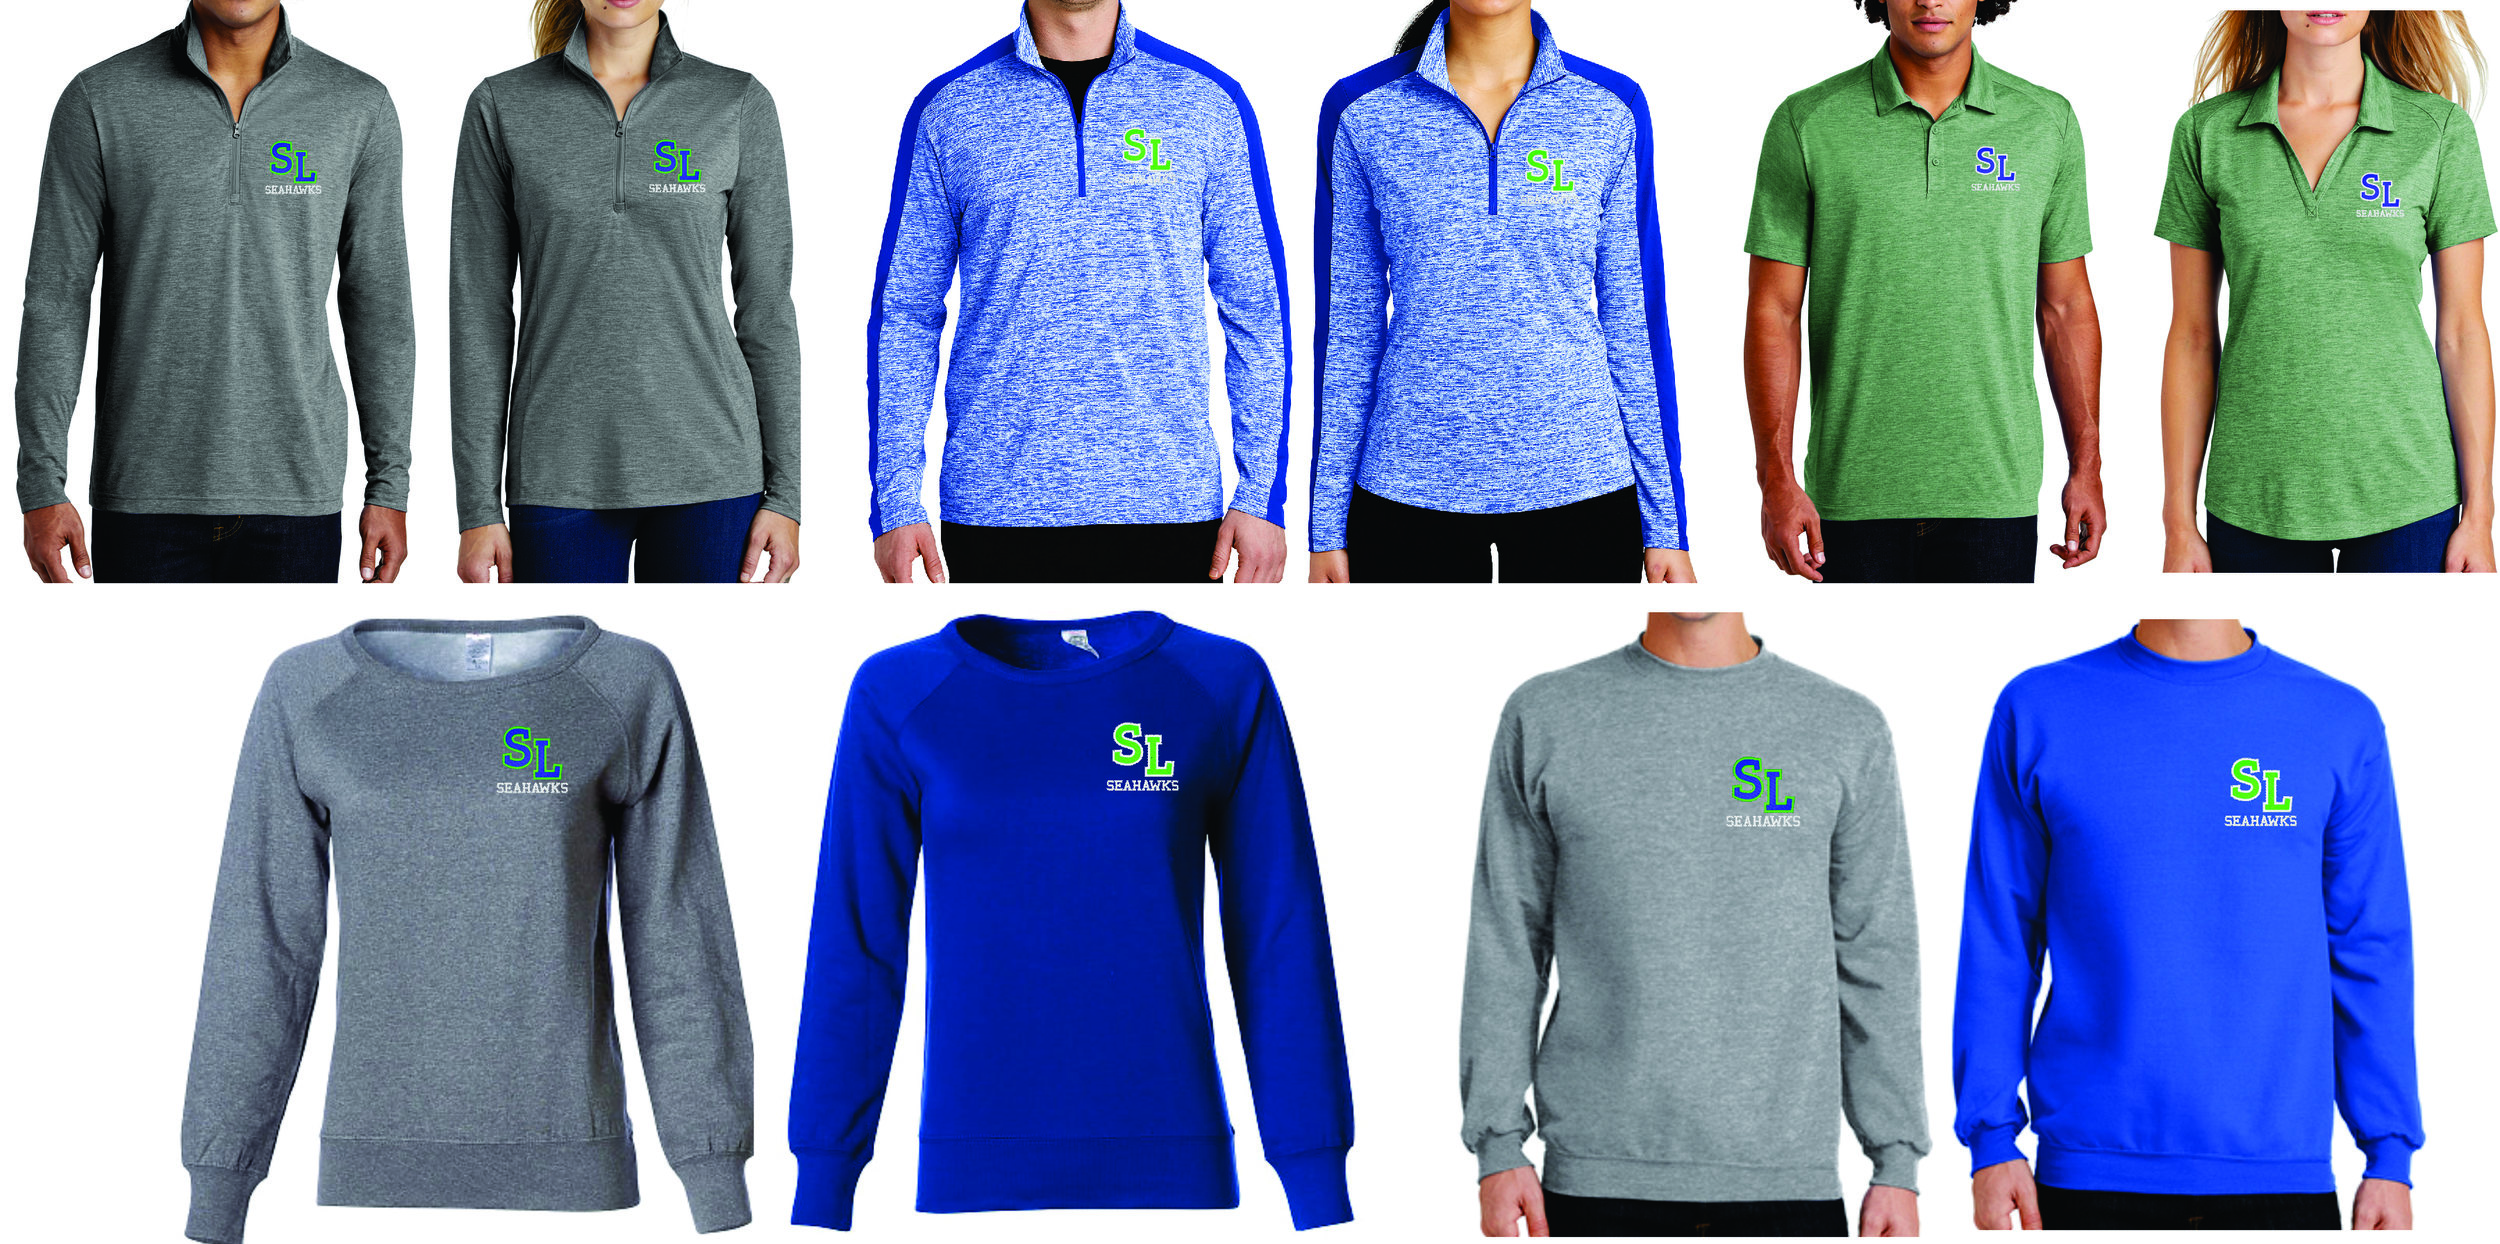 South Lakes Faculty Apparel 080819.jpg